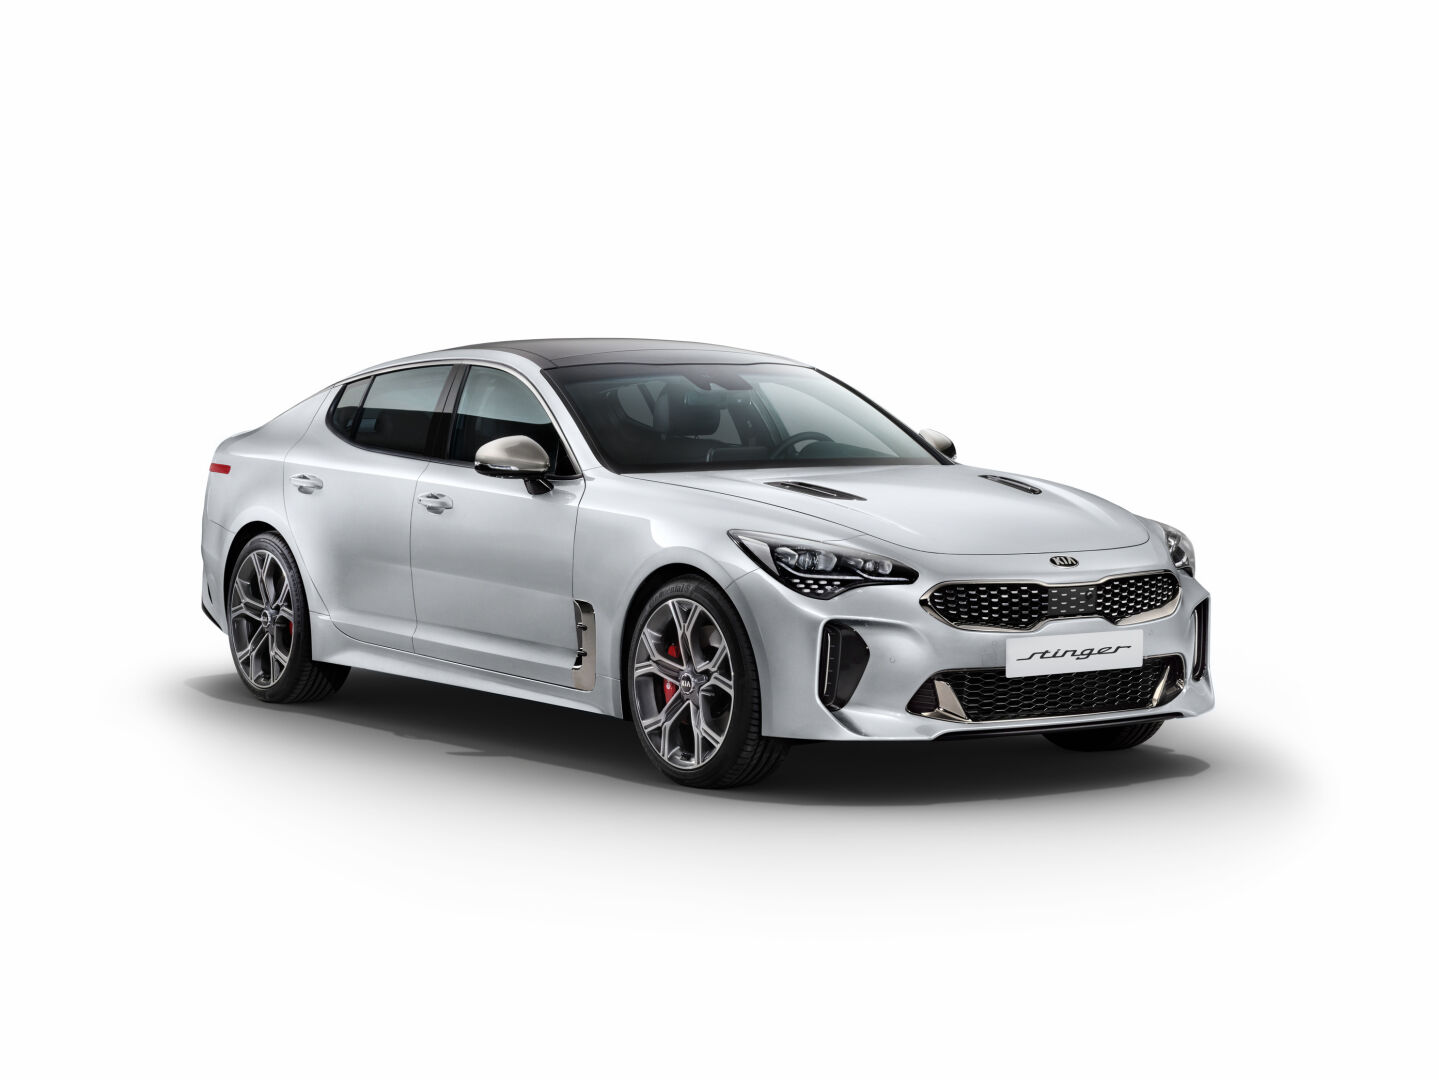 Kia STINGER 226209 carousel thumbs